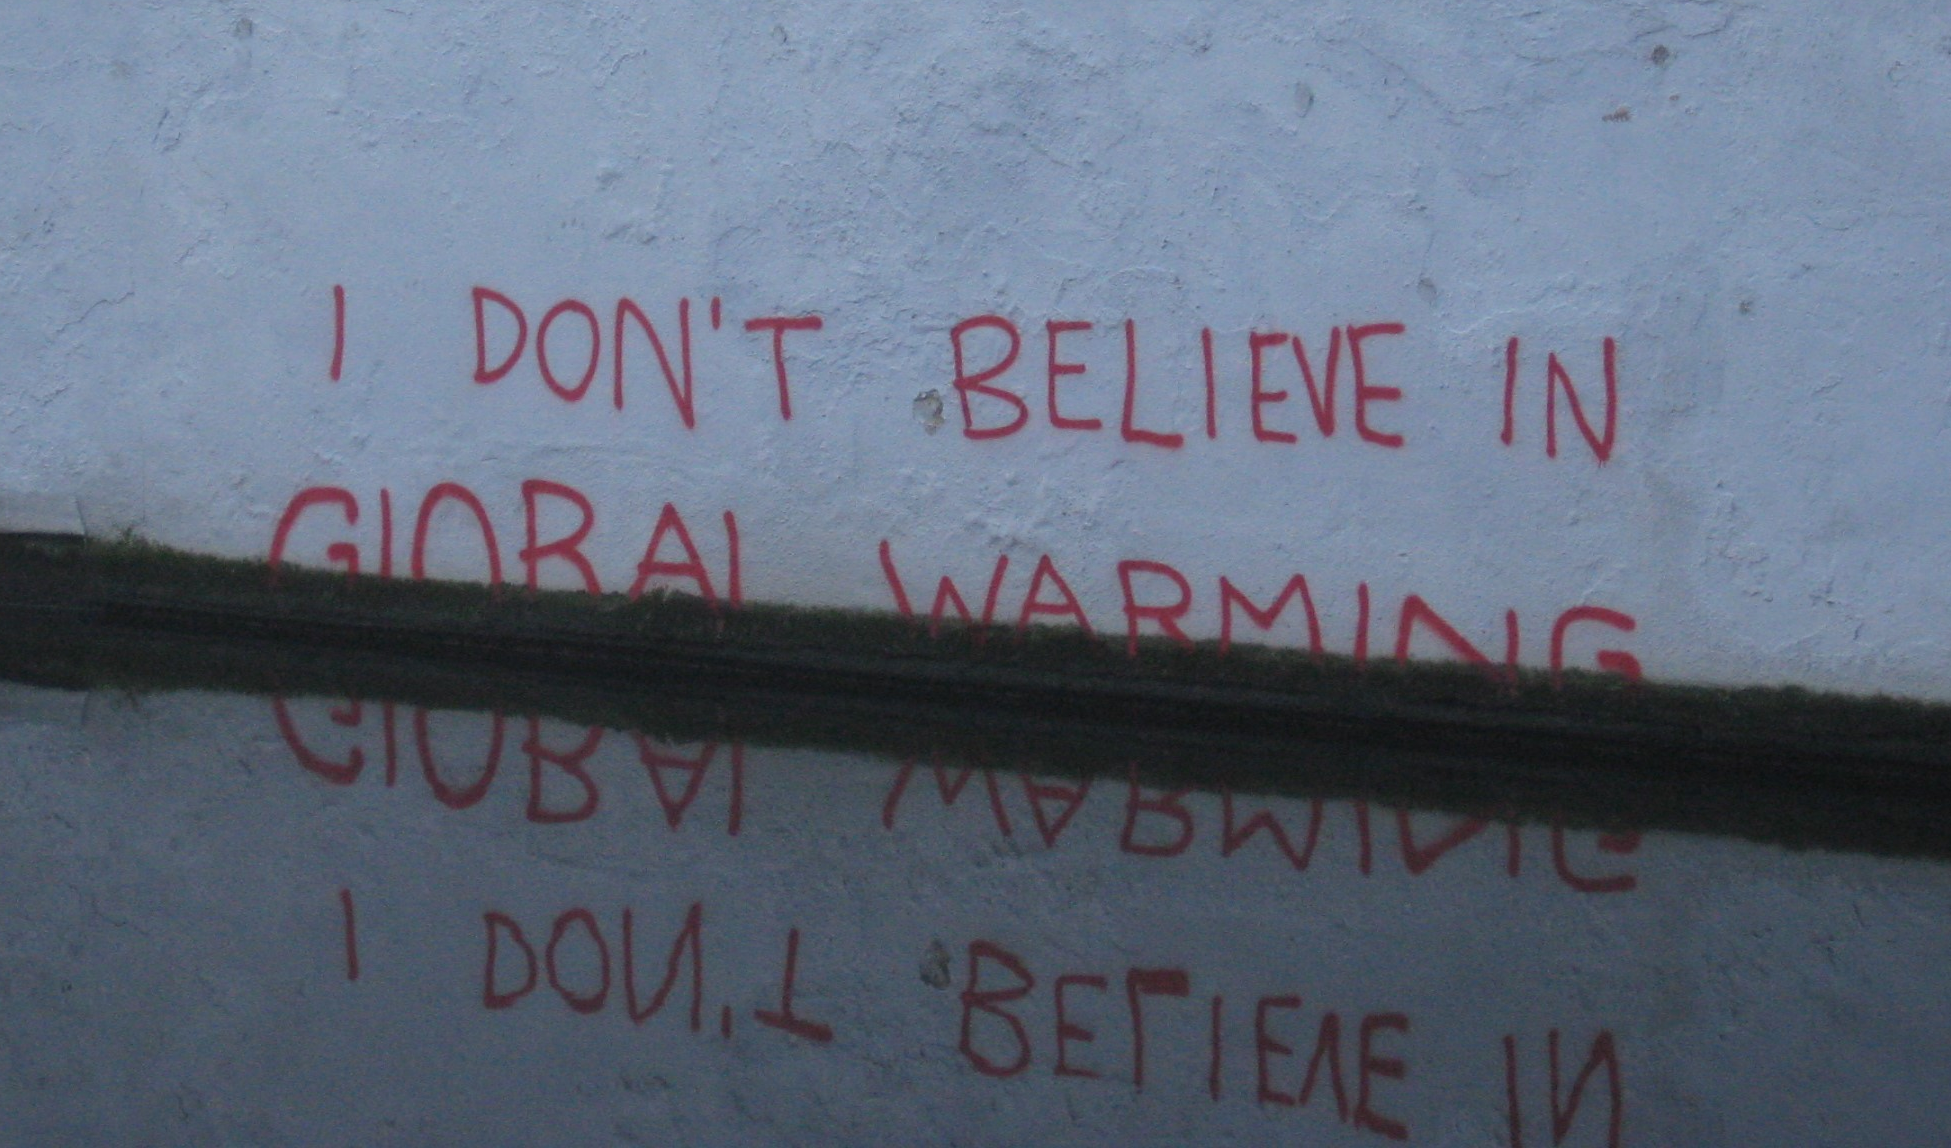 don't believe in global warming and climate change